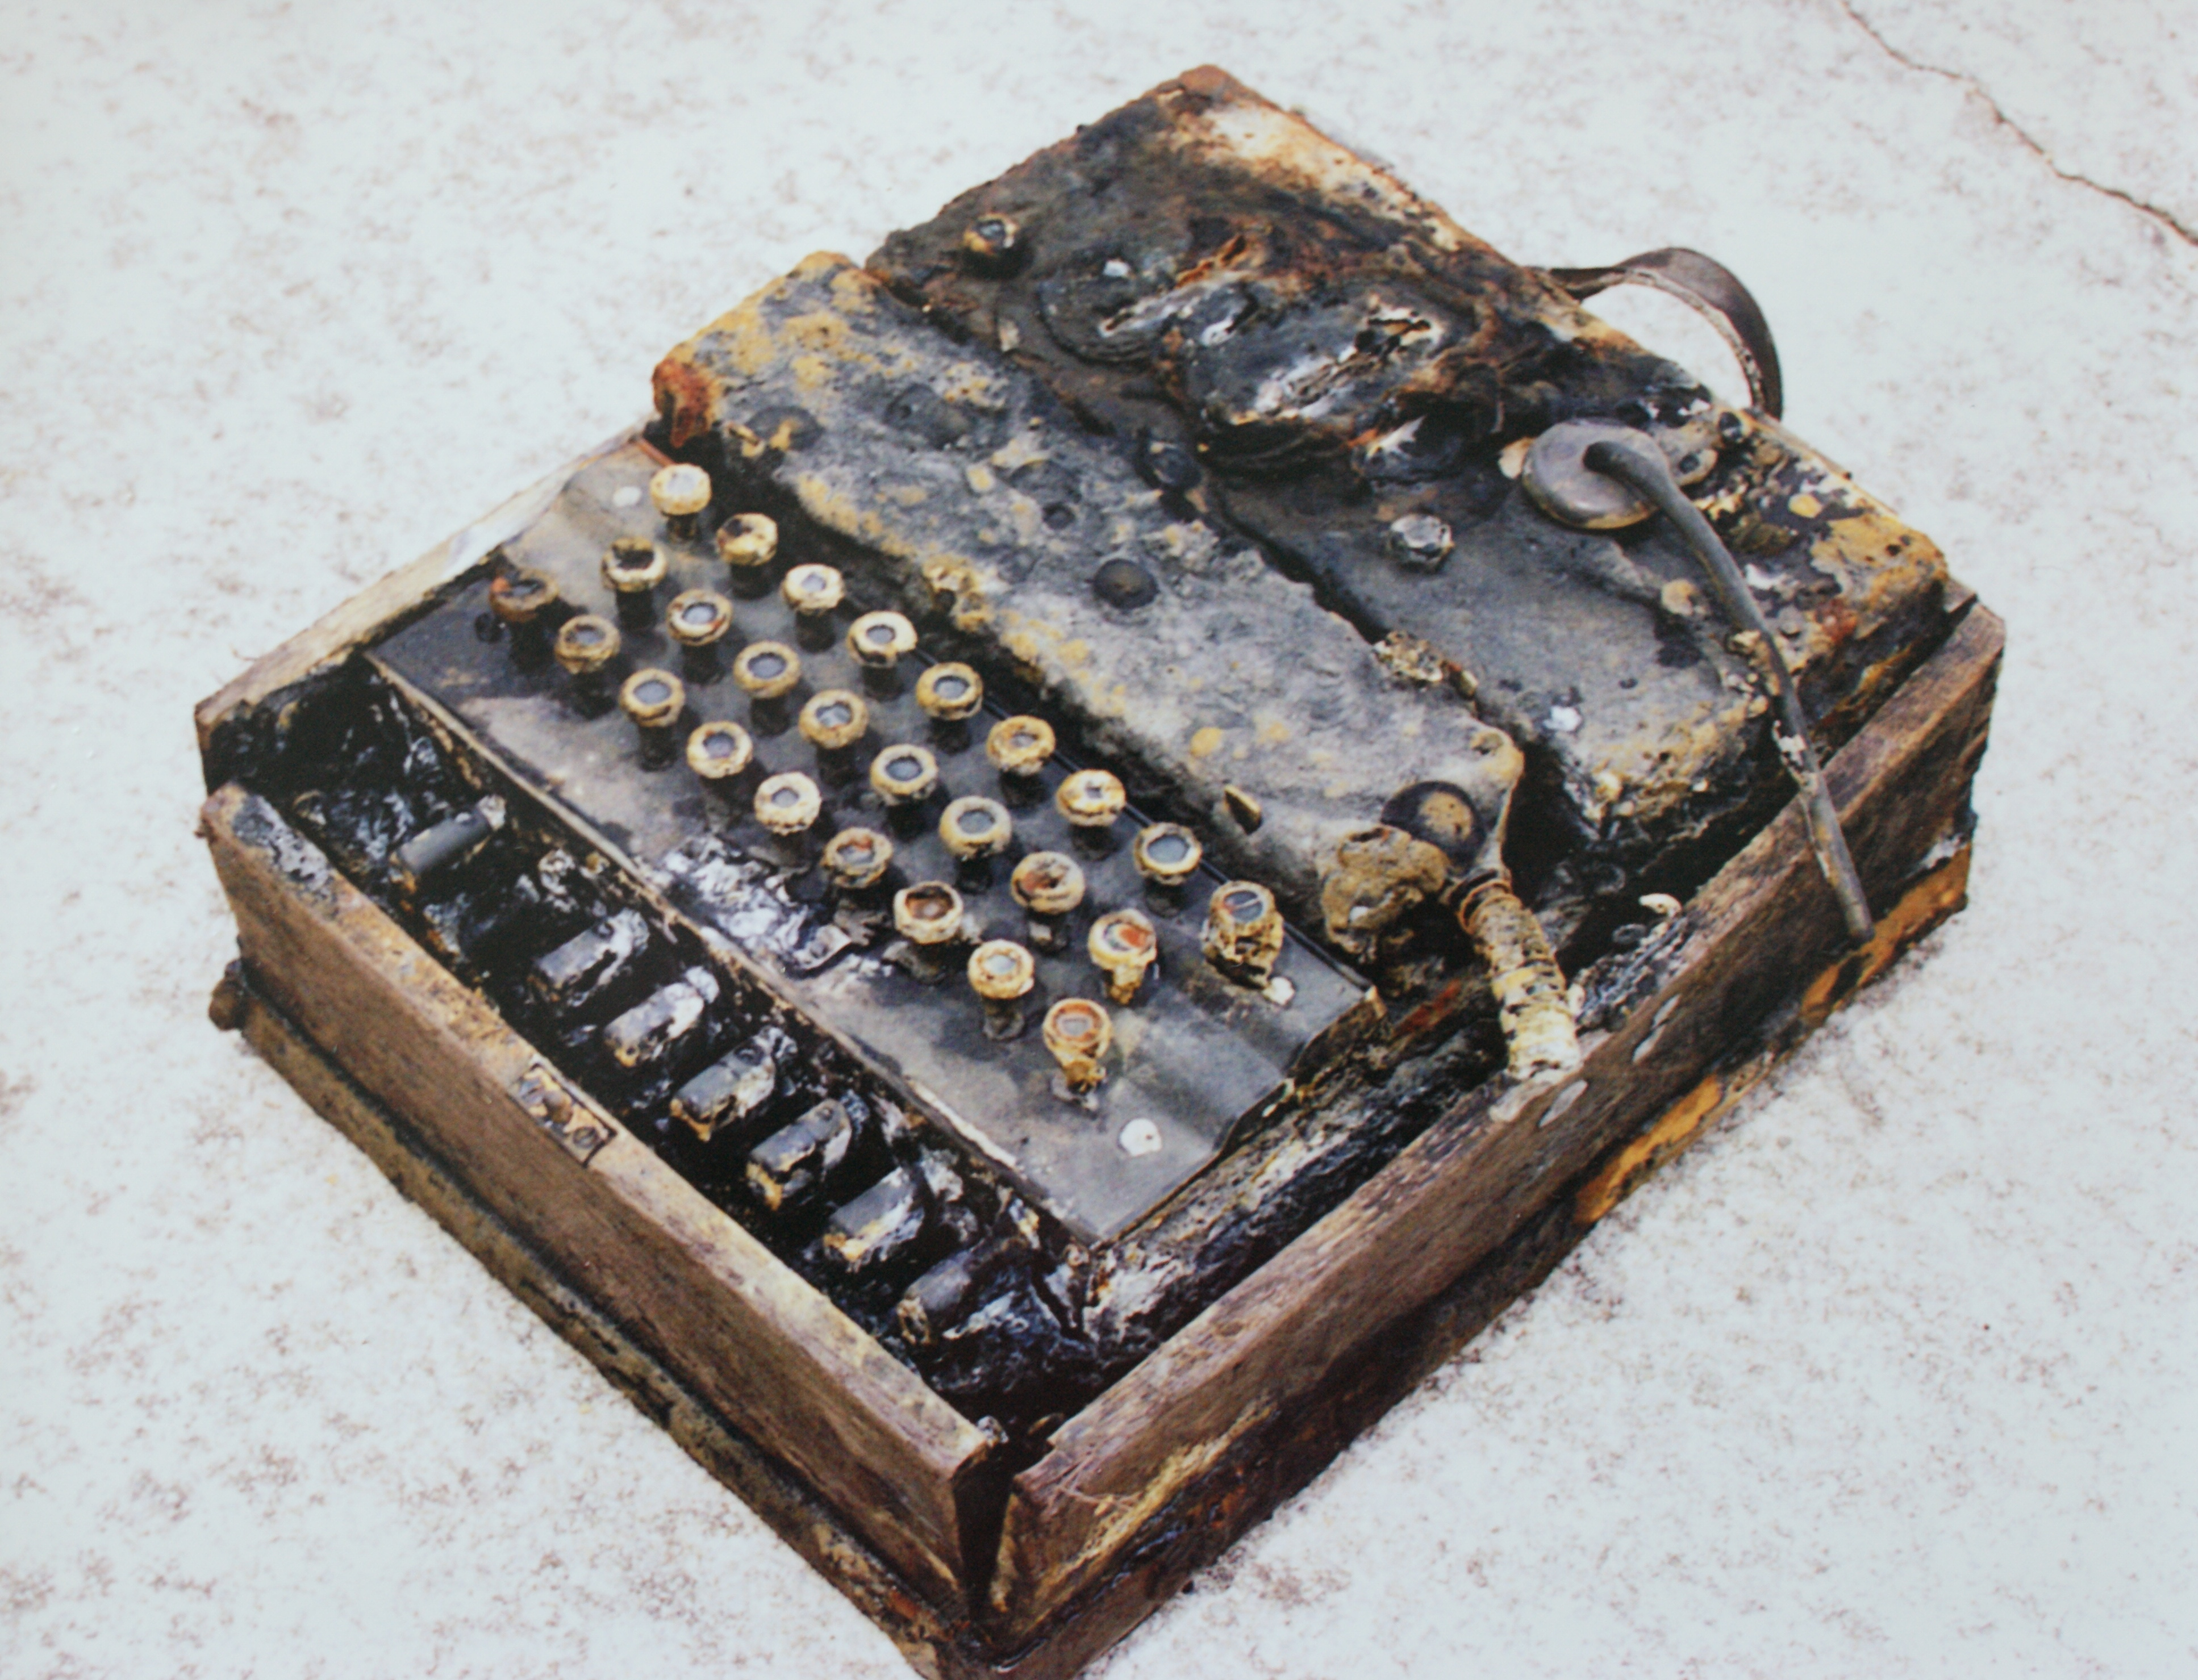 An Enigma machine, part of the collection of the Graveyard of the Atlantic Museum, early in the conservation process